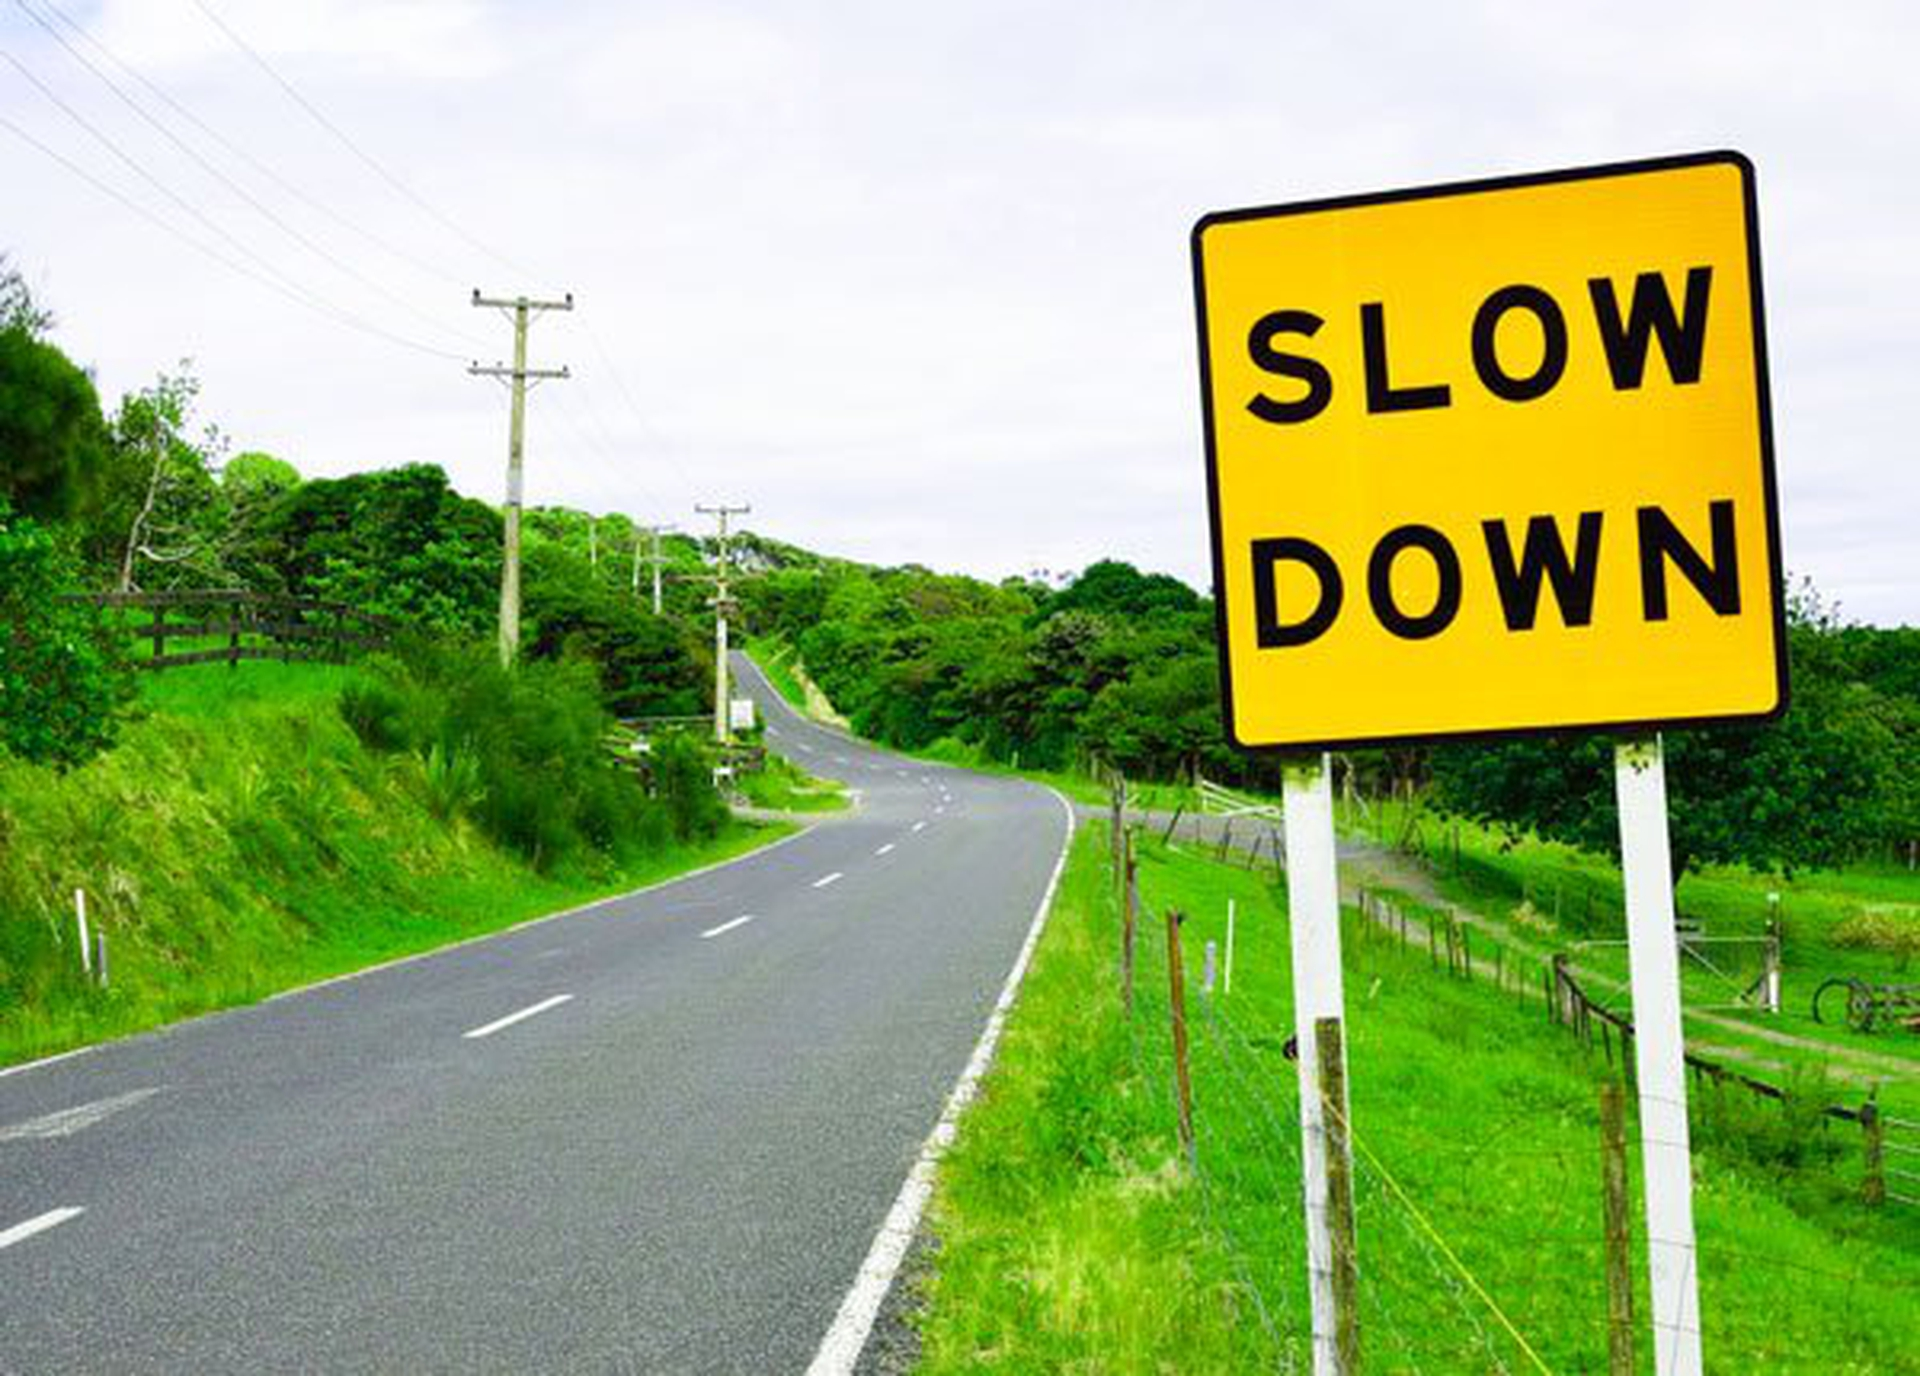 Choosing Safe Speed for Driving